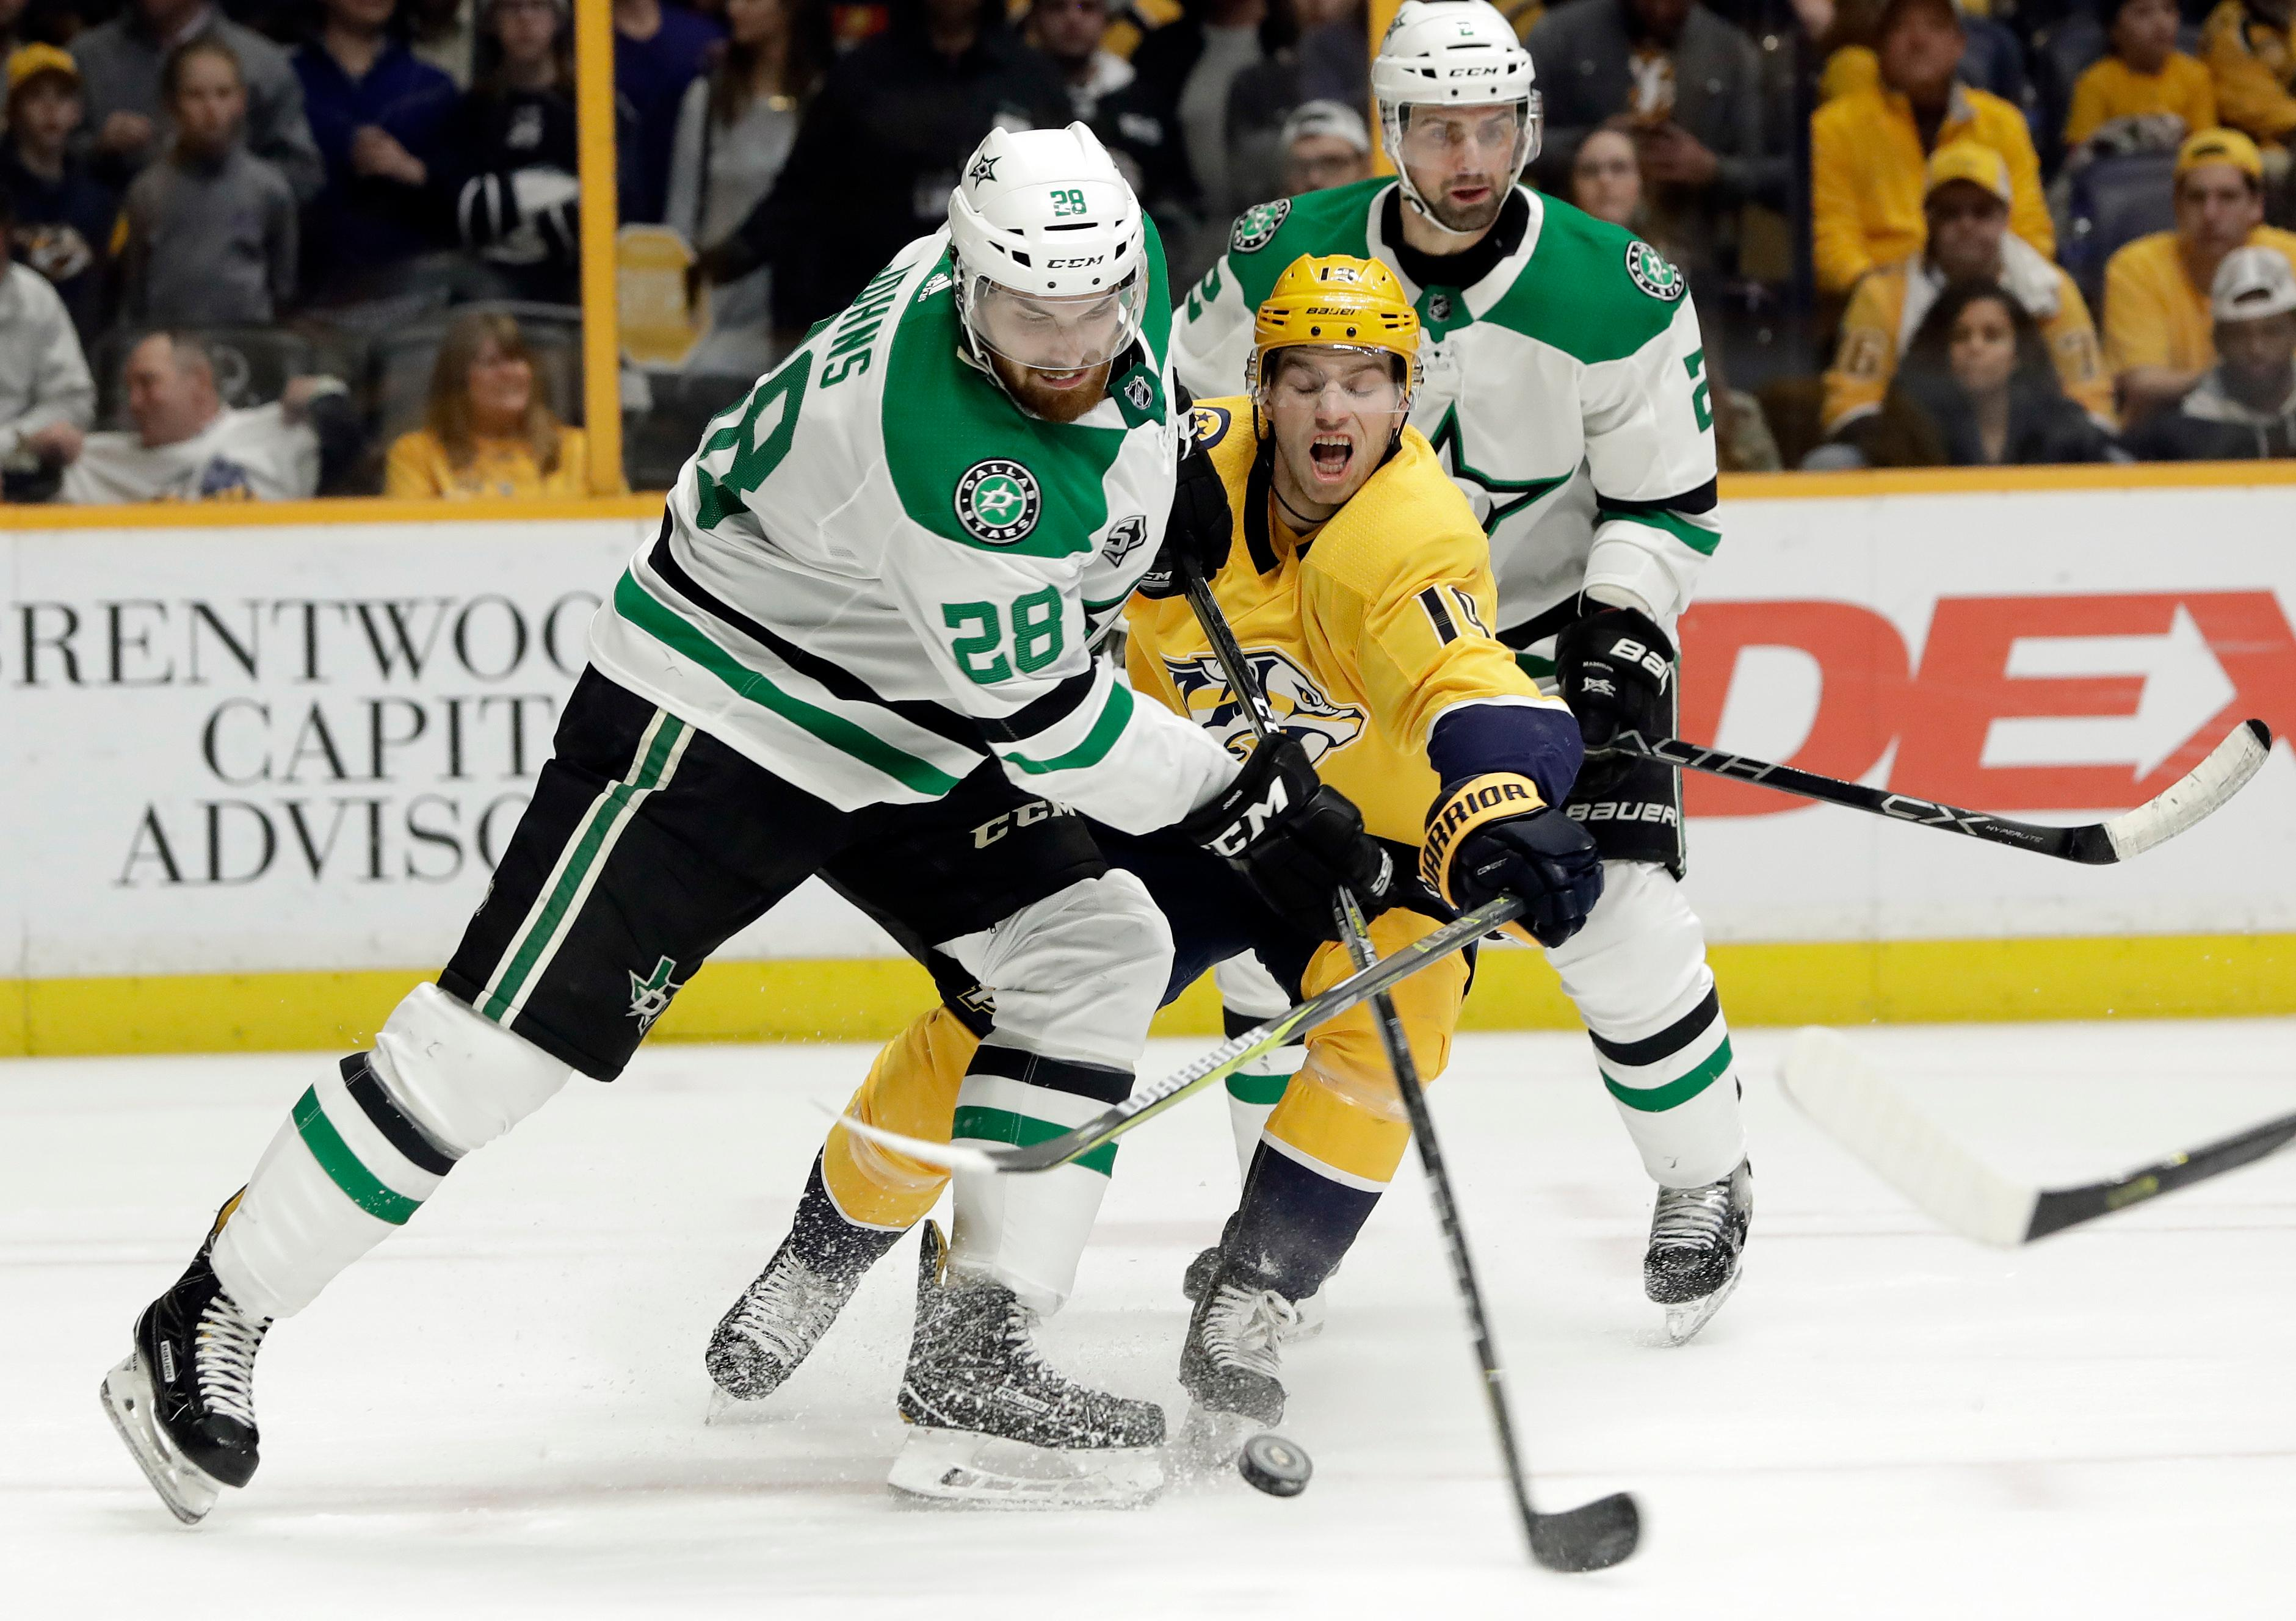 Dallas Stars defenseman Stephen Johns (28) and Nashville Predators center Calle Jarnkrok (19), of Sweden, battle for the puck in the second period of an NHL hockey game Tuesday, March 6, 2018, in Nashville, Tenn. (AP Photo/Mark Humphrey)